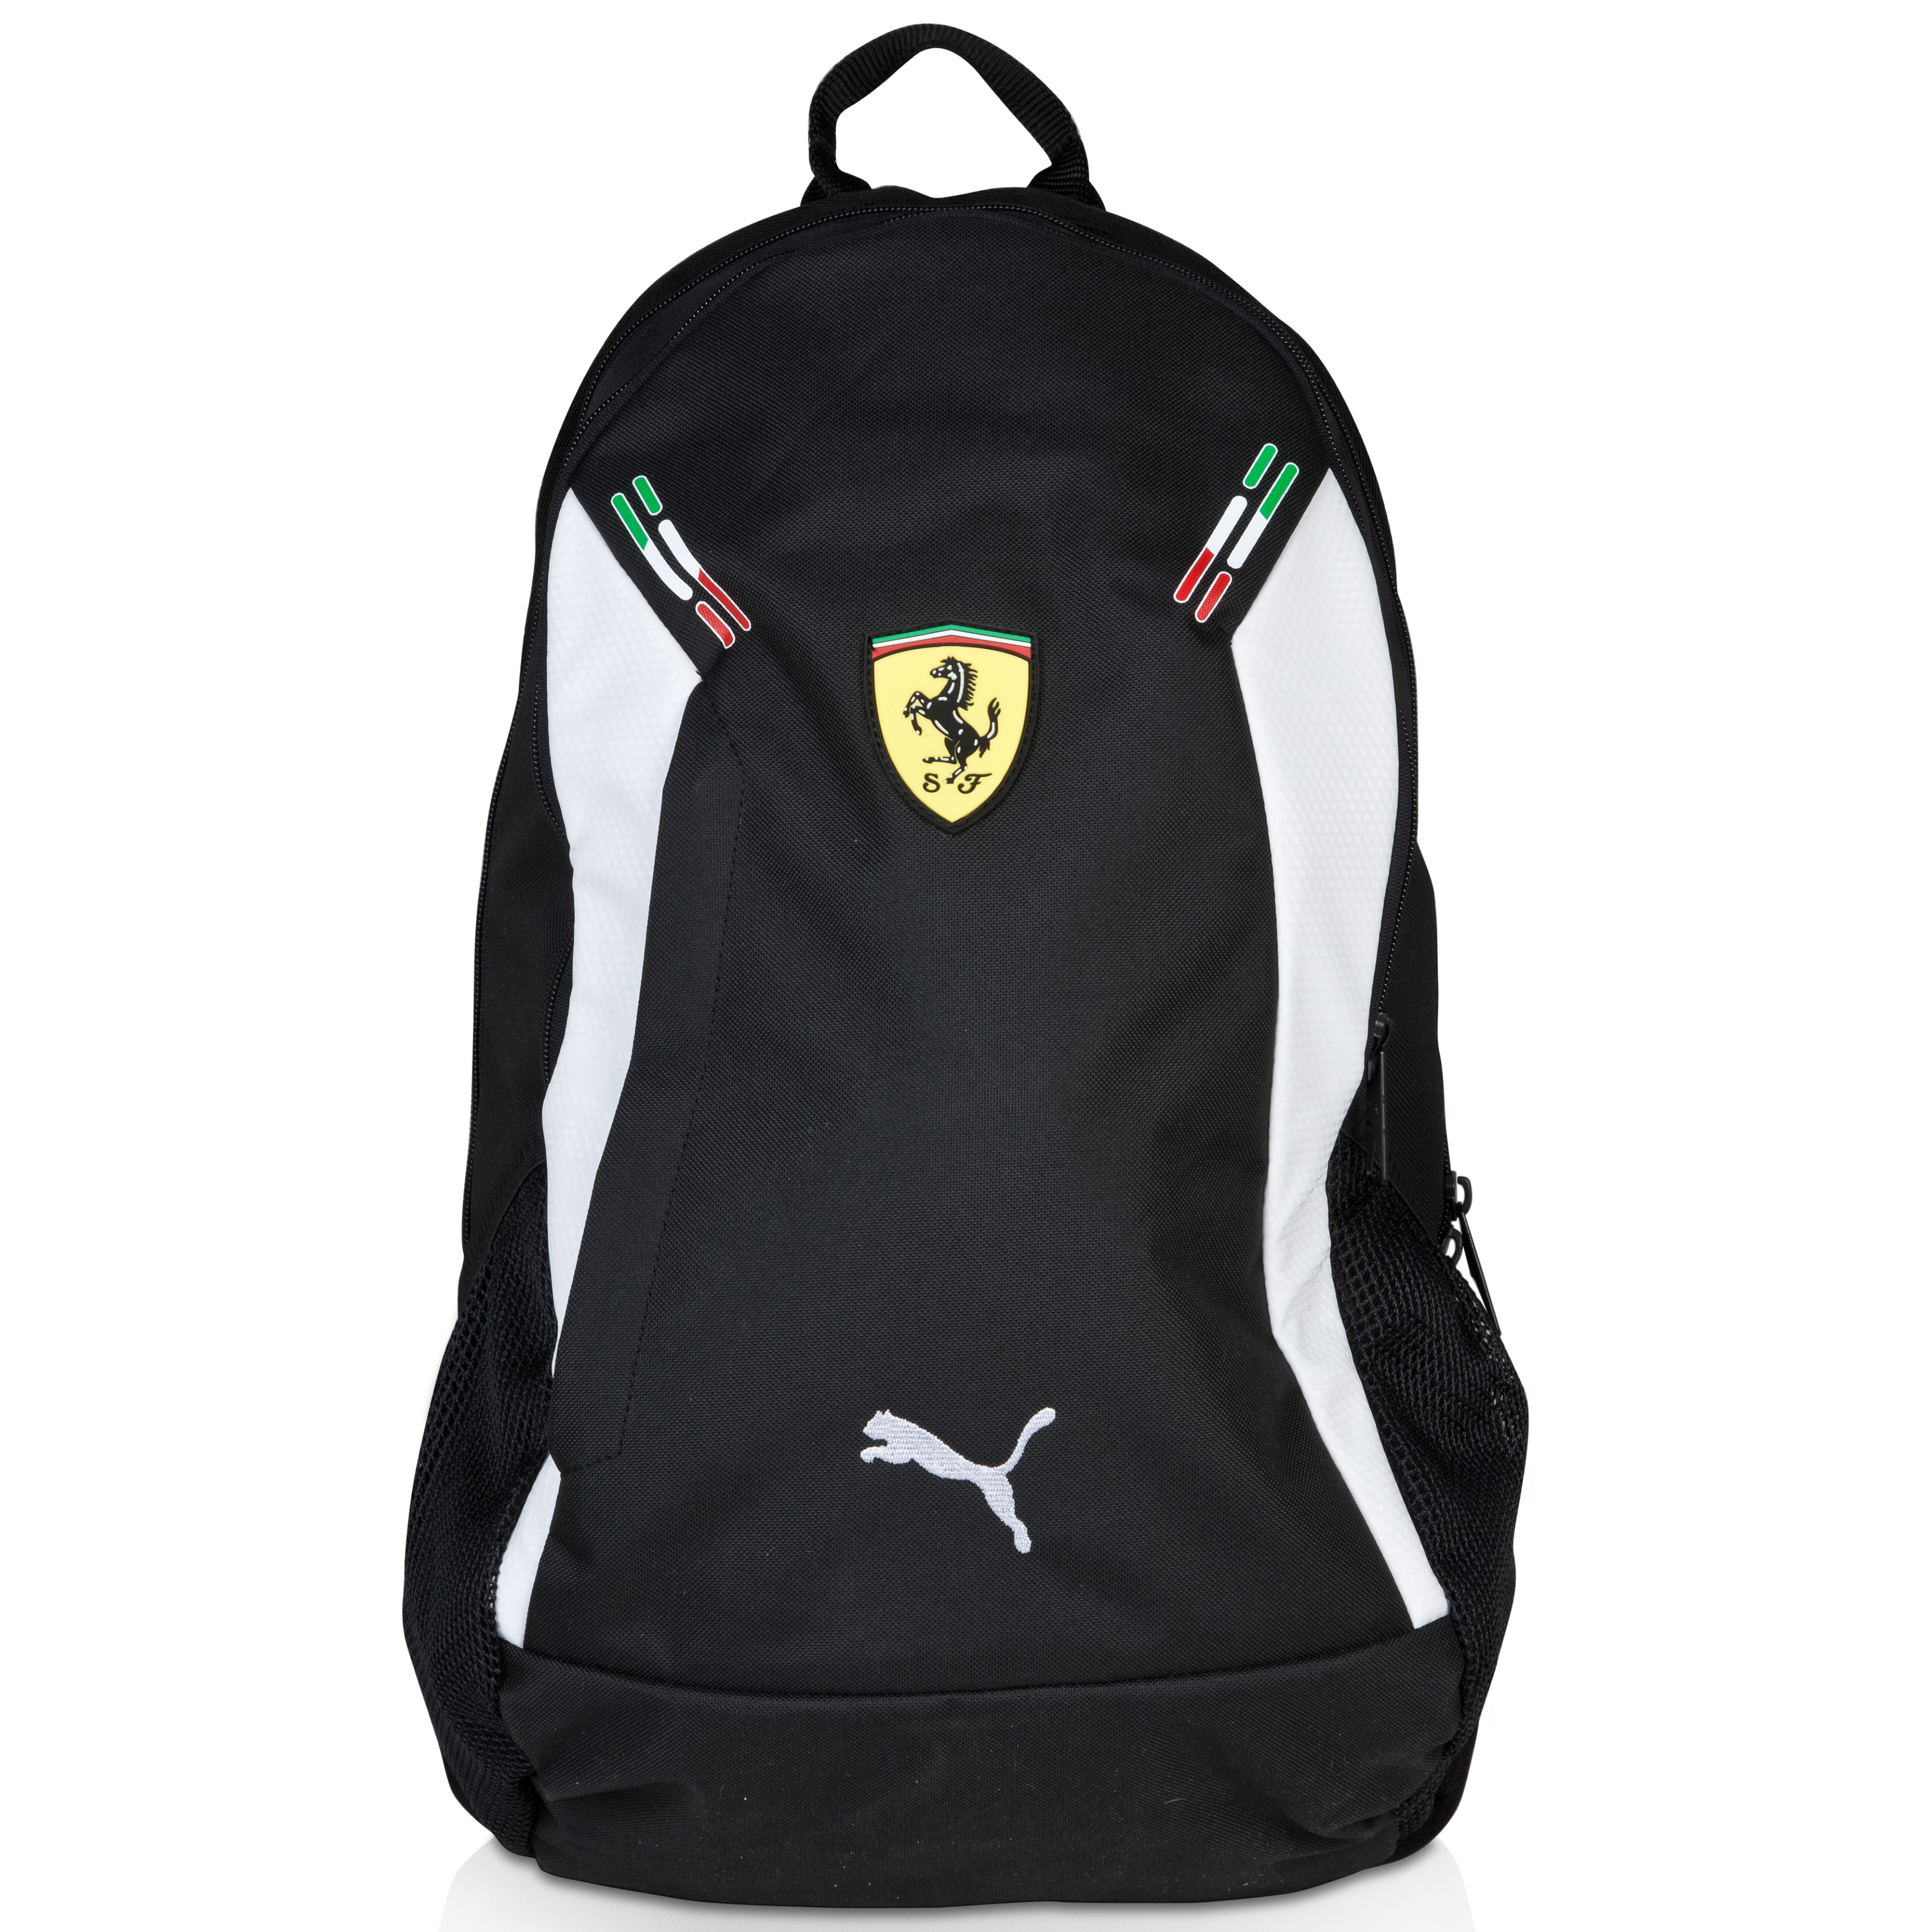 Scuderia Ferrari Replica Backpack - Black/White